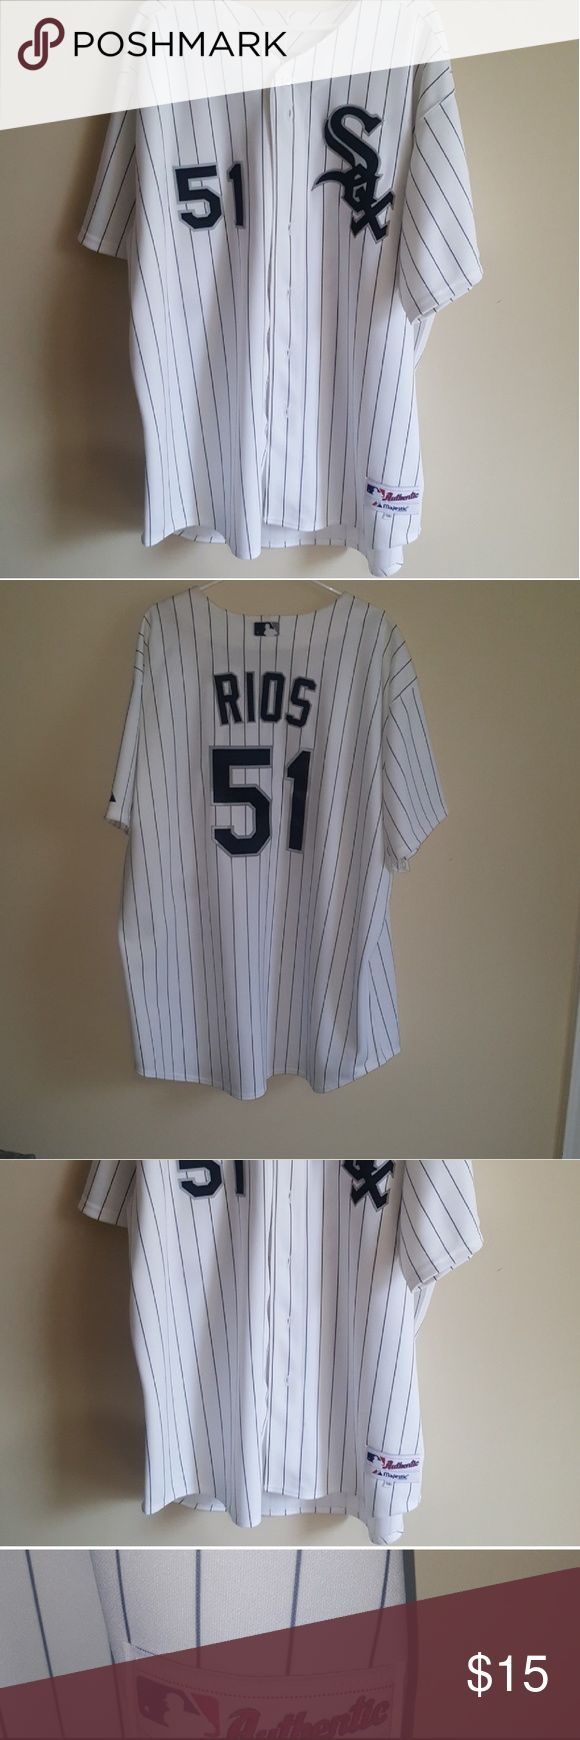 Authentic Majestic Alex Rios White Sox Size 56. Worn once, too long for me. Majestic Shirts Tees - Short Sleeve